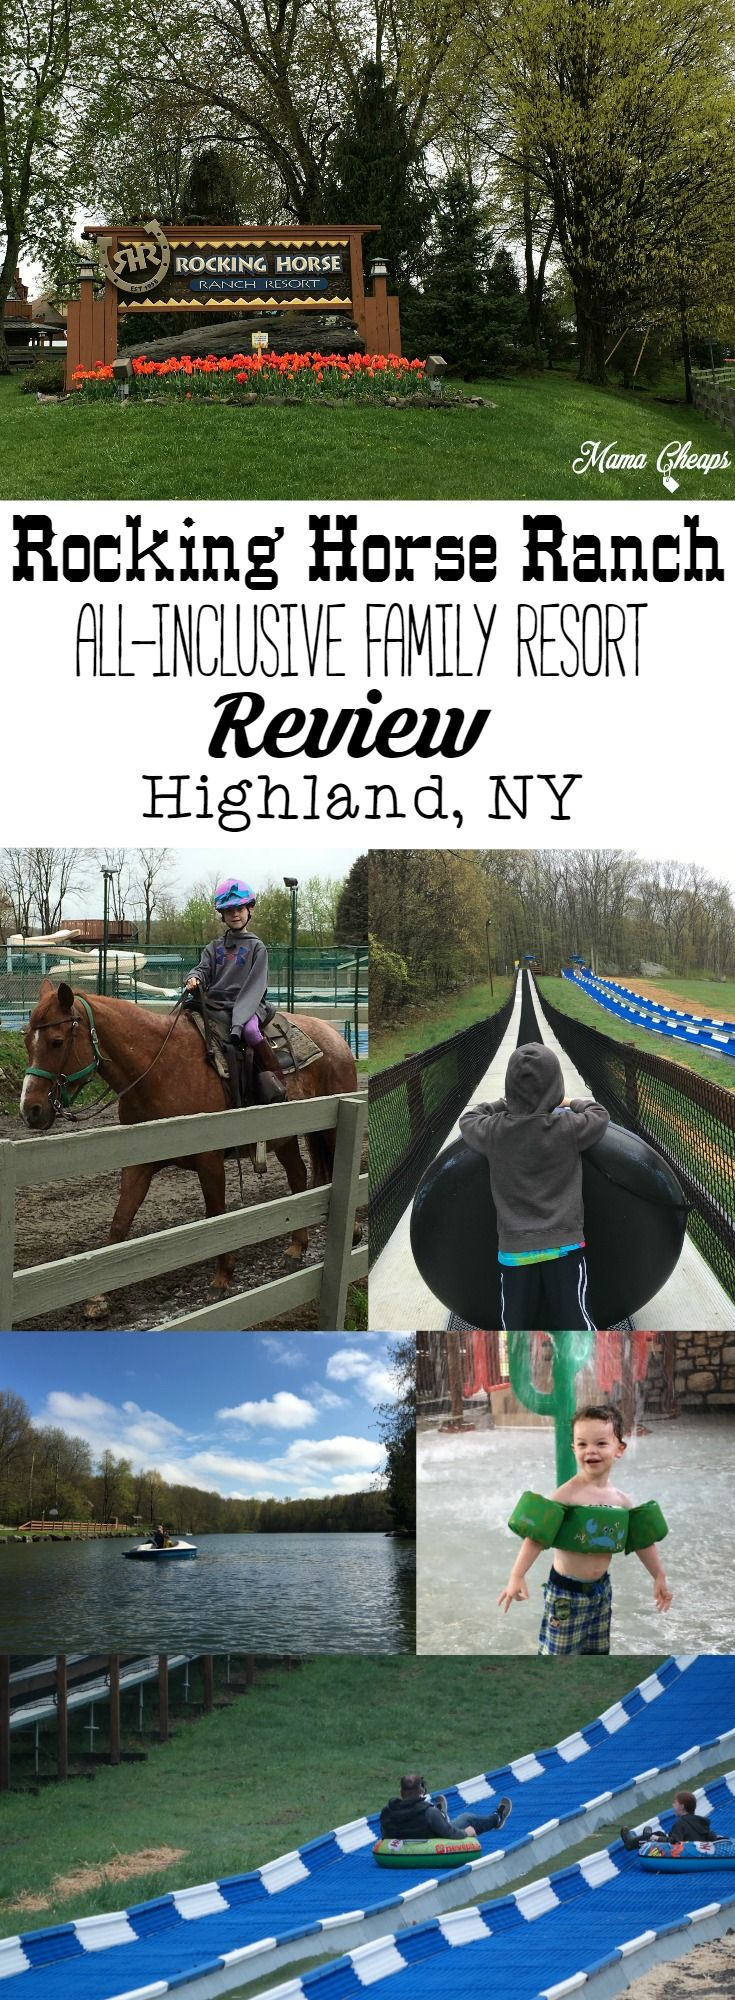 Rocking Horse Ranch All-Inclusive Family Resort Review (Highland, NY) Find more travel reviews on MamaCheaps.com!